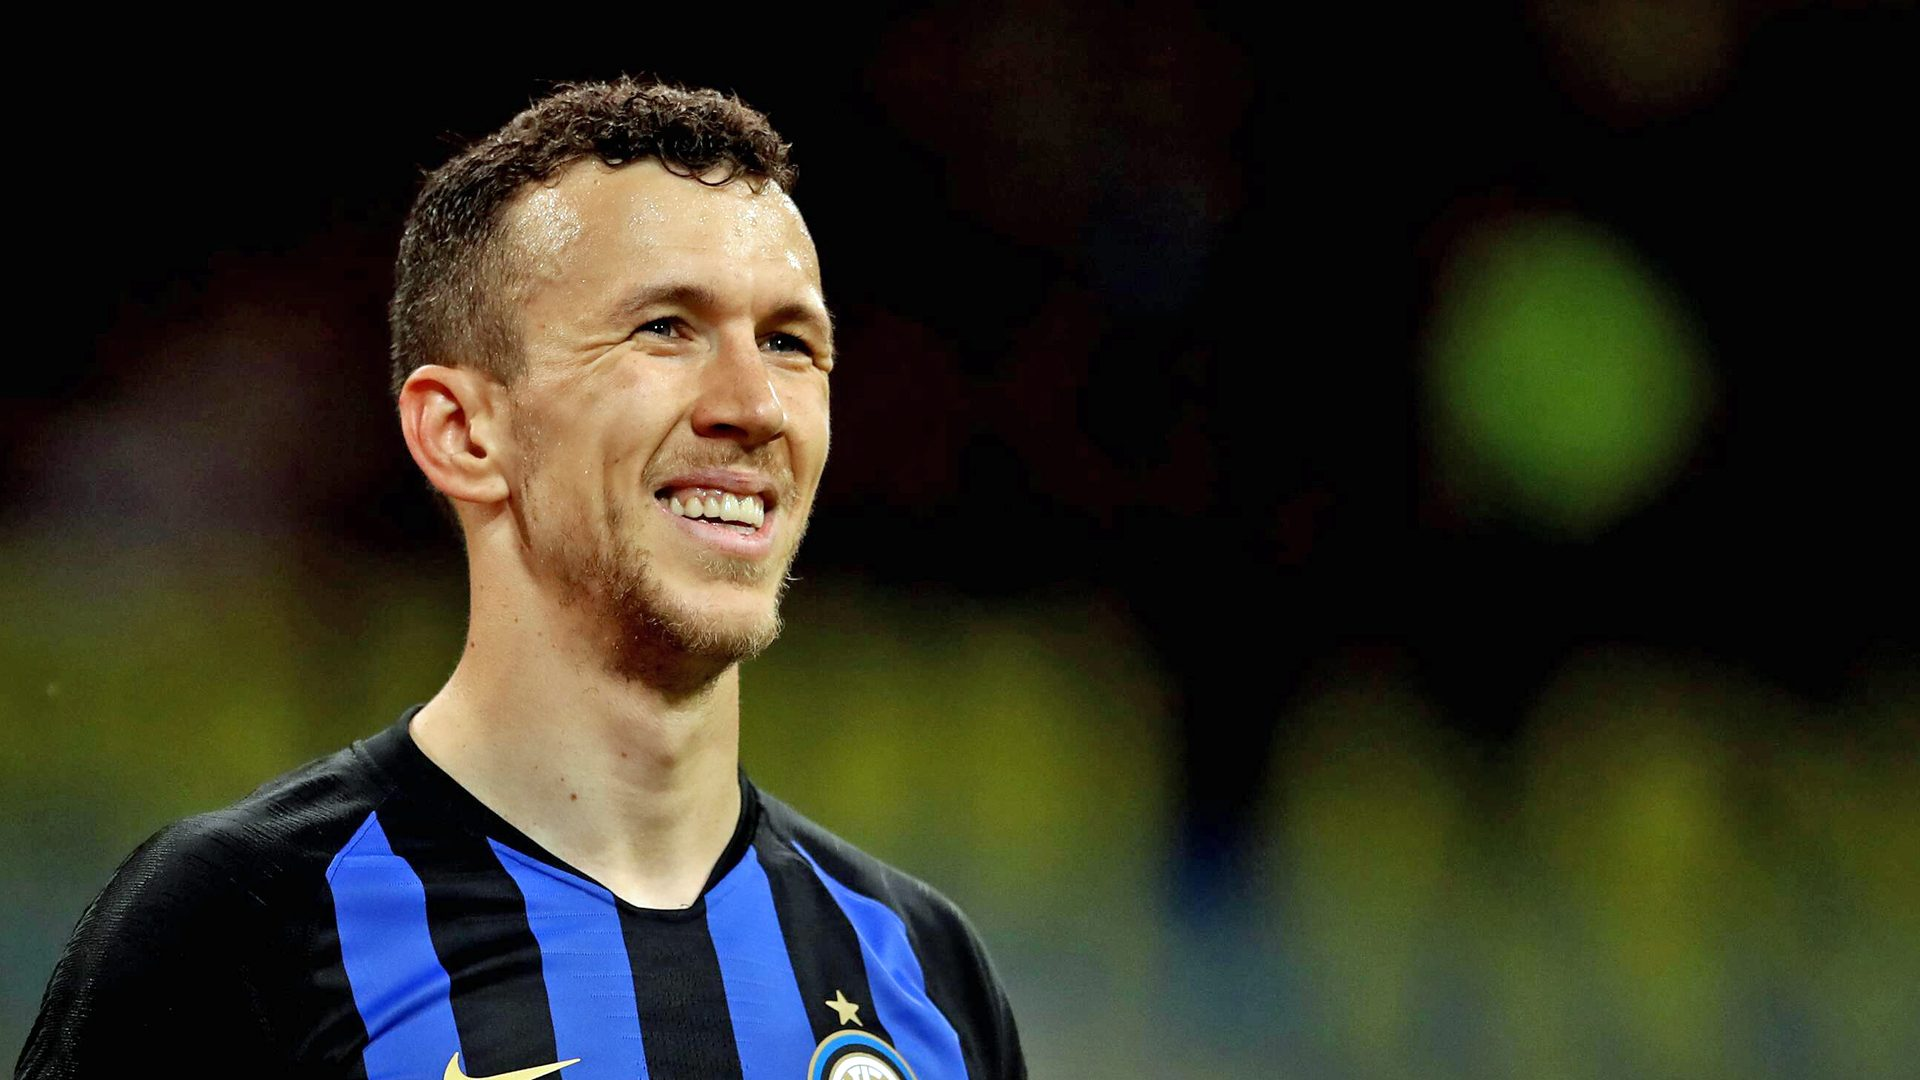 Bundesliga | Bayern Munich sign Ivan Perisic on loan from Inter Milan